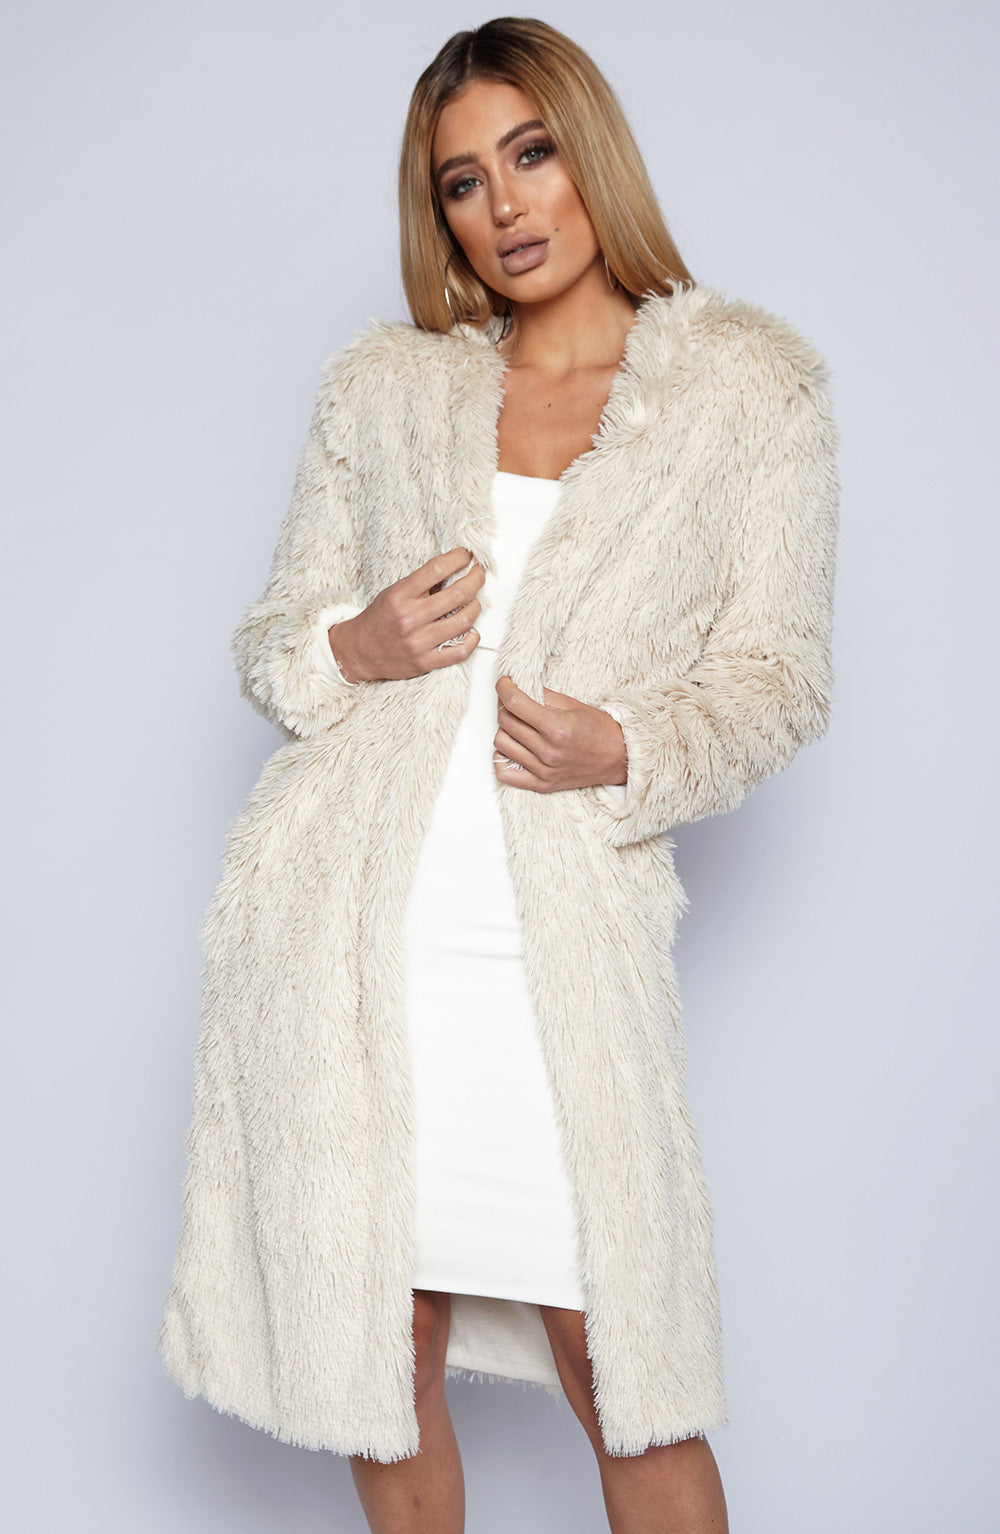 Fux Fur Coat - Beige